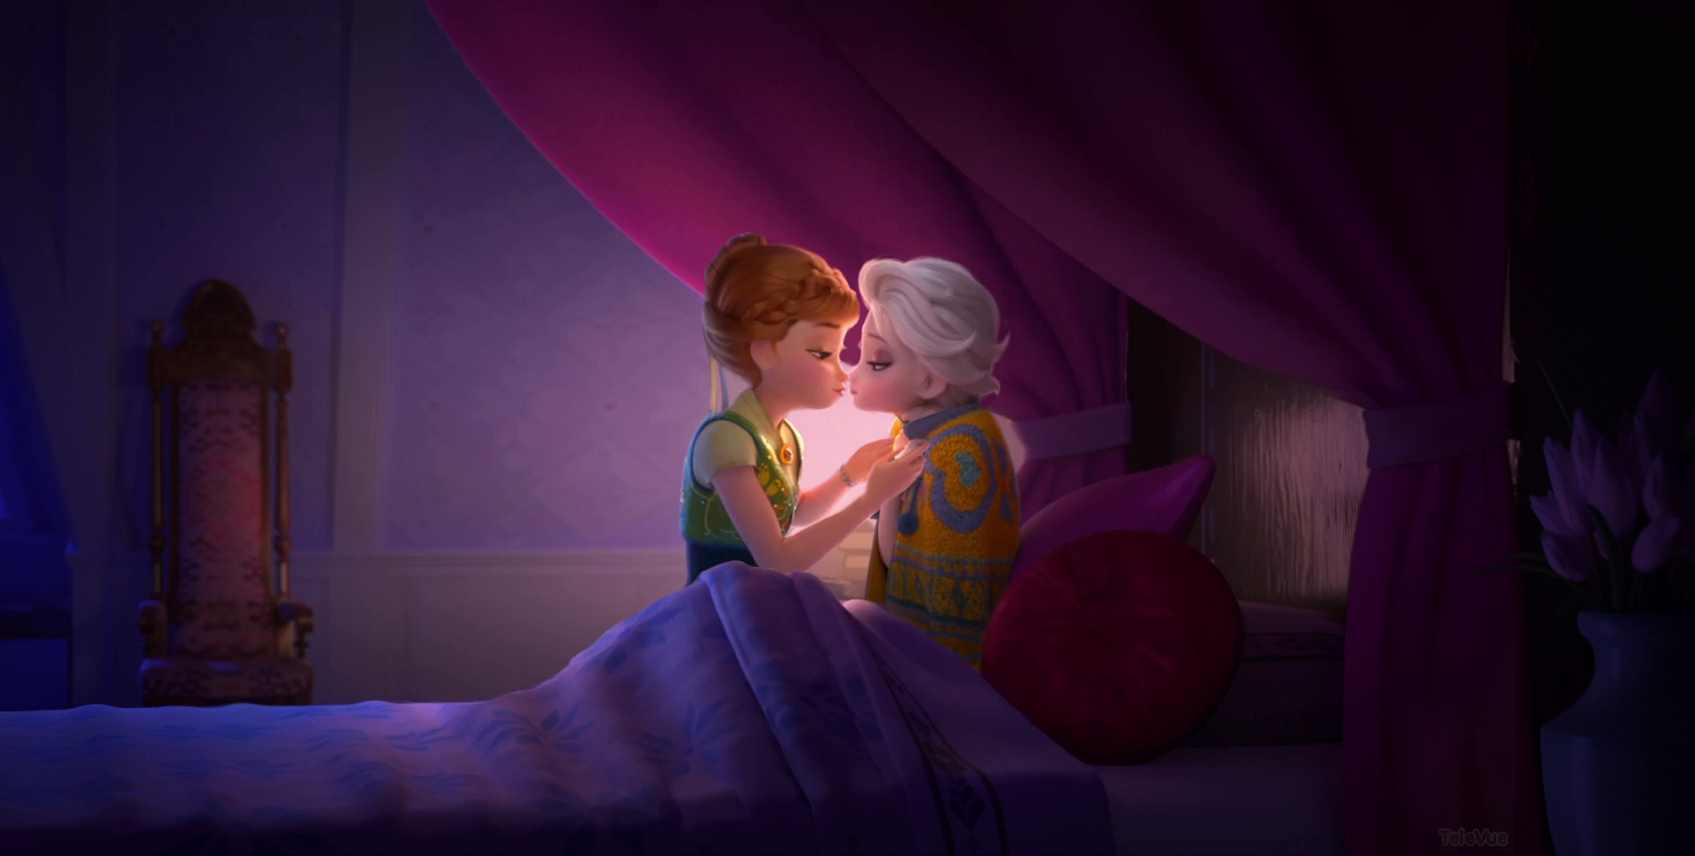 Movies Frozen FollowFav Passionate Kiss By  Its Elsanna set in the canon universe I dont know why I wrote this thing but Im not sorry I did Dont like dont read Thanks Elsa stood in her throne room near the throne observing her younger sister Anna who was standing by the newly installed huge open window The sunlight that